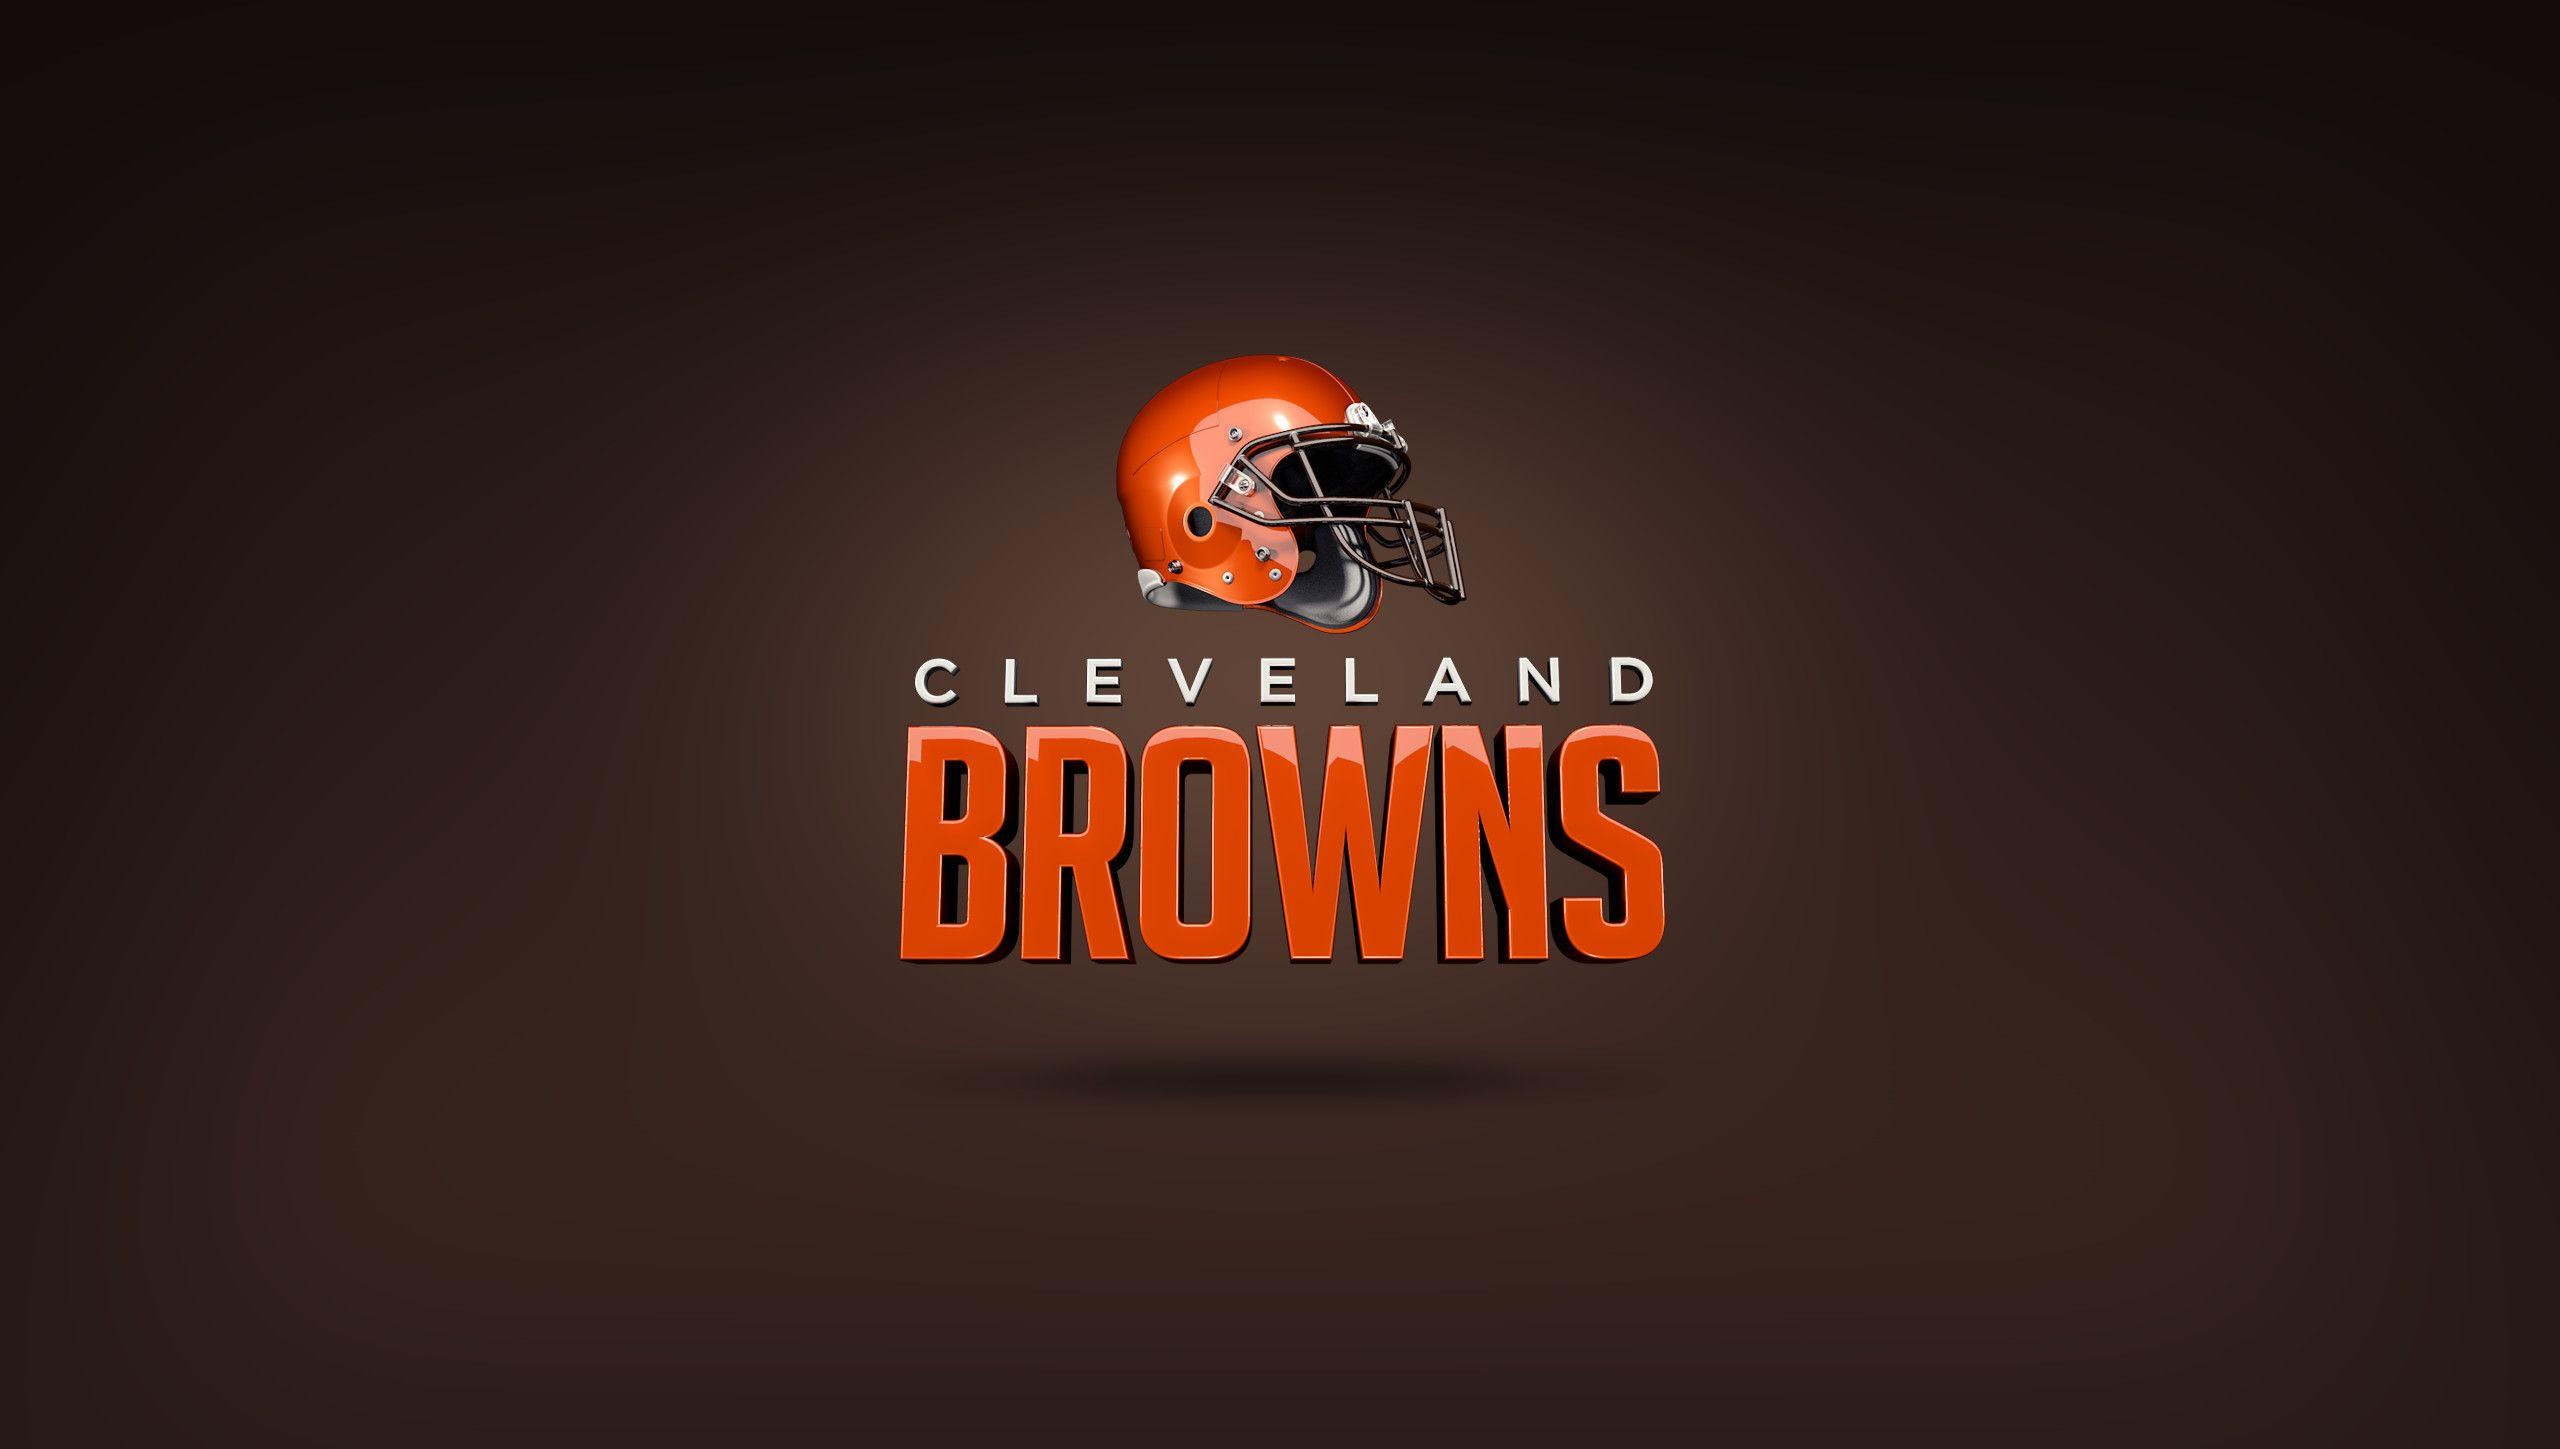 Cleveland Browns Schedule 2018 Wallpaper (73+ images)